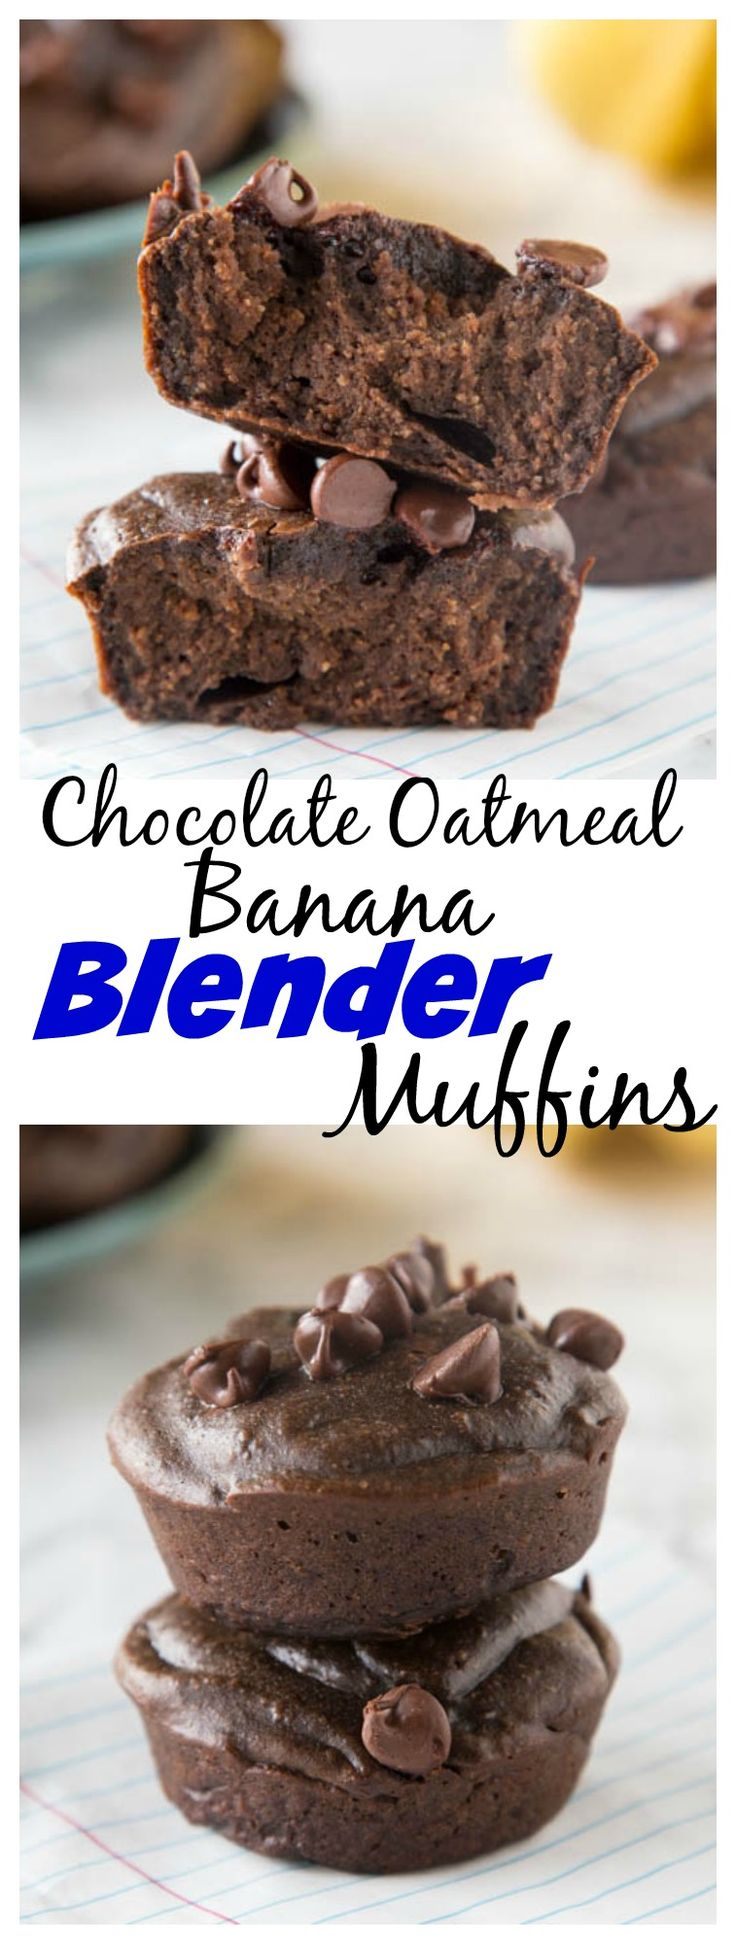 Chocolate Banana Oatmeal Blender Muffins – gluten free, healthy, muffins that will get your day started right!  Super quick and easy and the freezer well too!